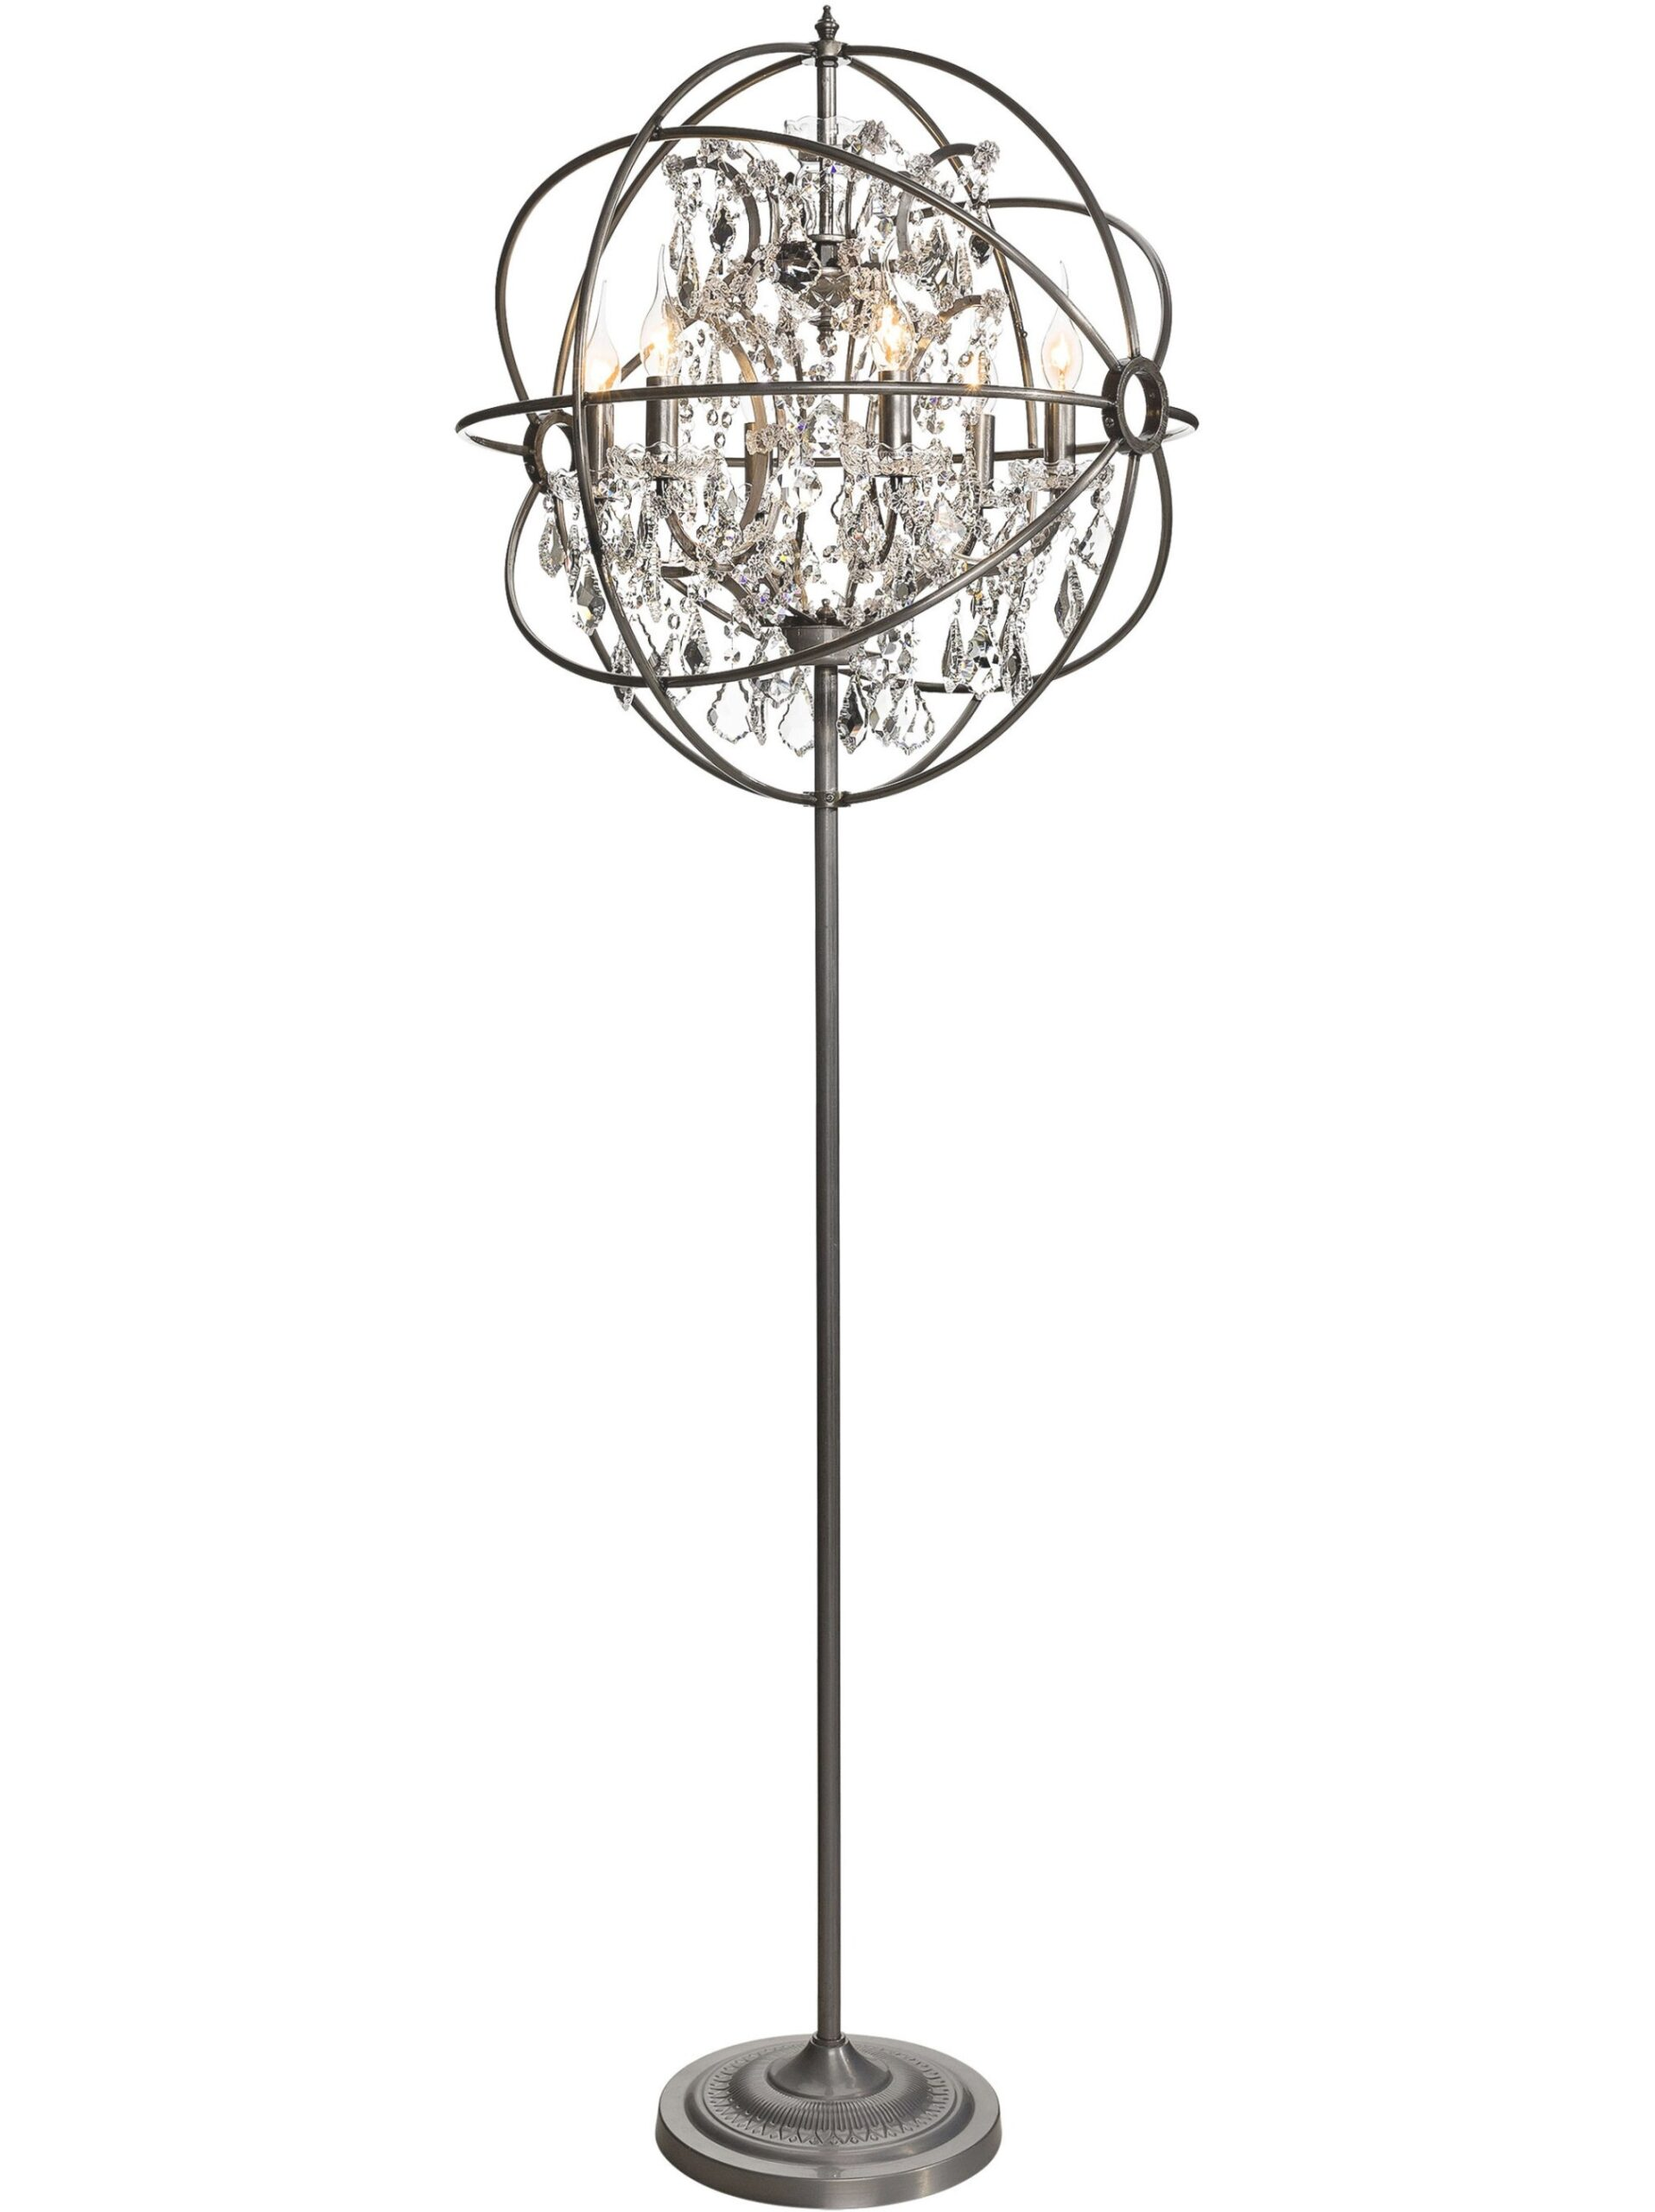 Use Floor Chandelier Lamps For Your Paradise House with Broyhill Lamps At Homegoods